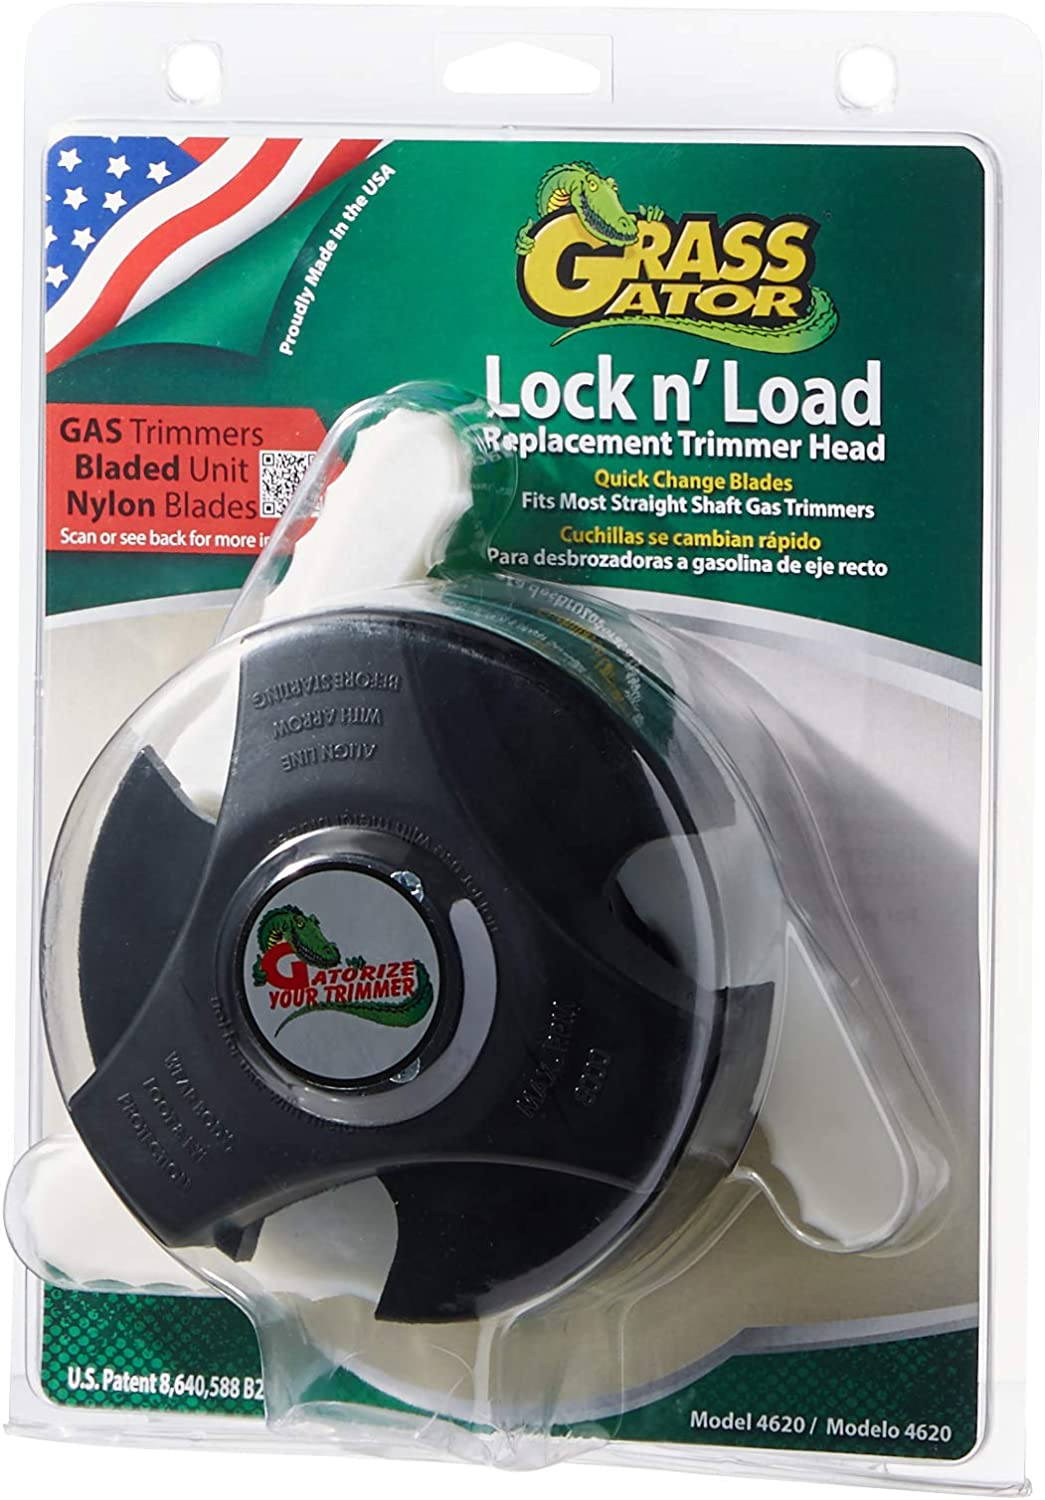 Grass Gator 4620 Heavy Duty Lock & Load Replacement String Trimmer Head